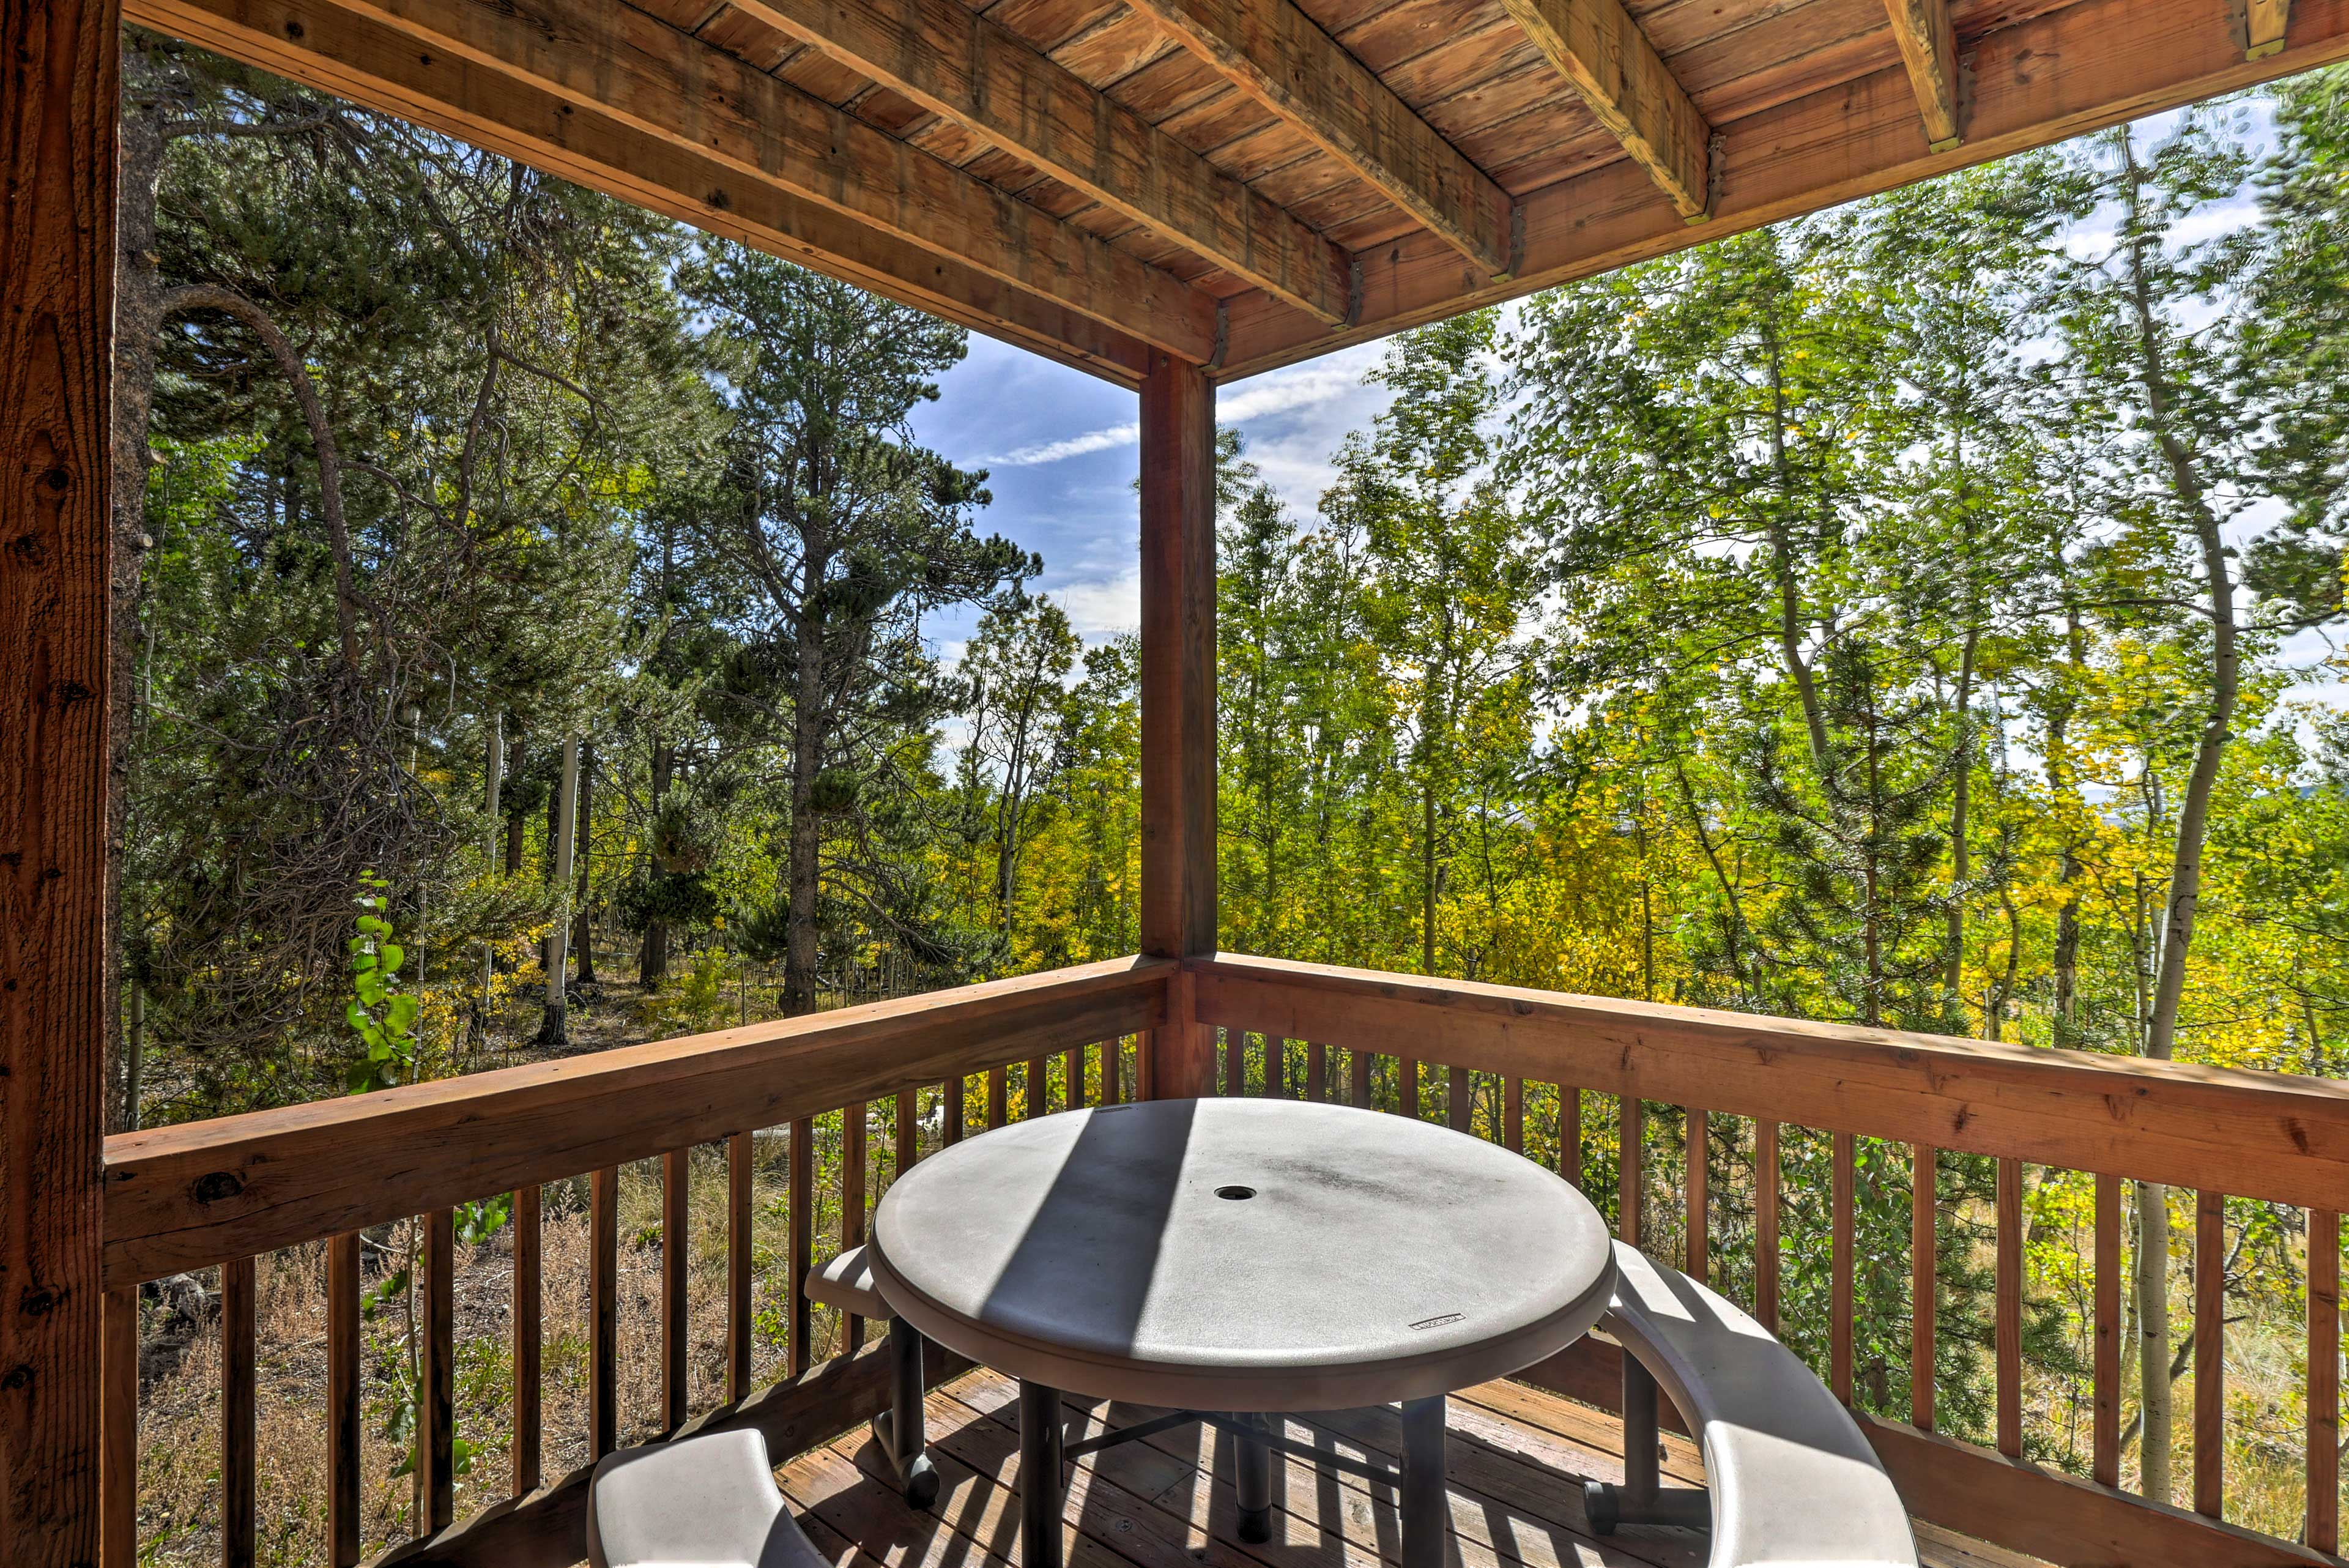 Delight in meals al fresco on the spacious deck.